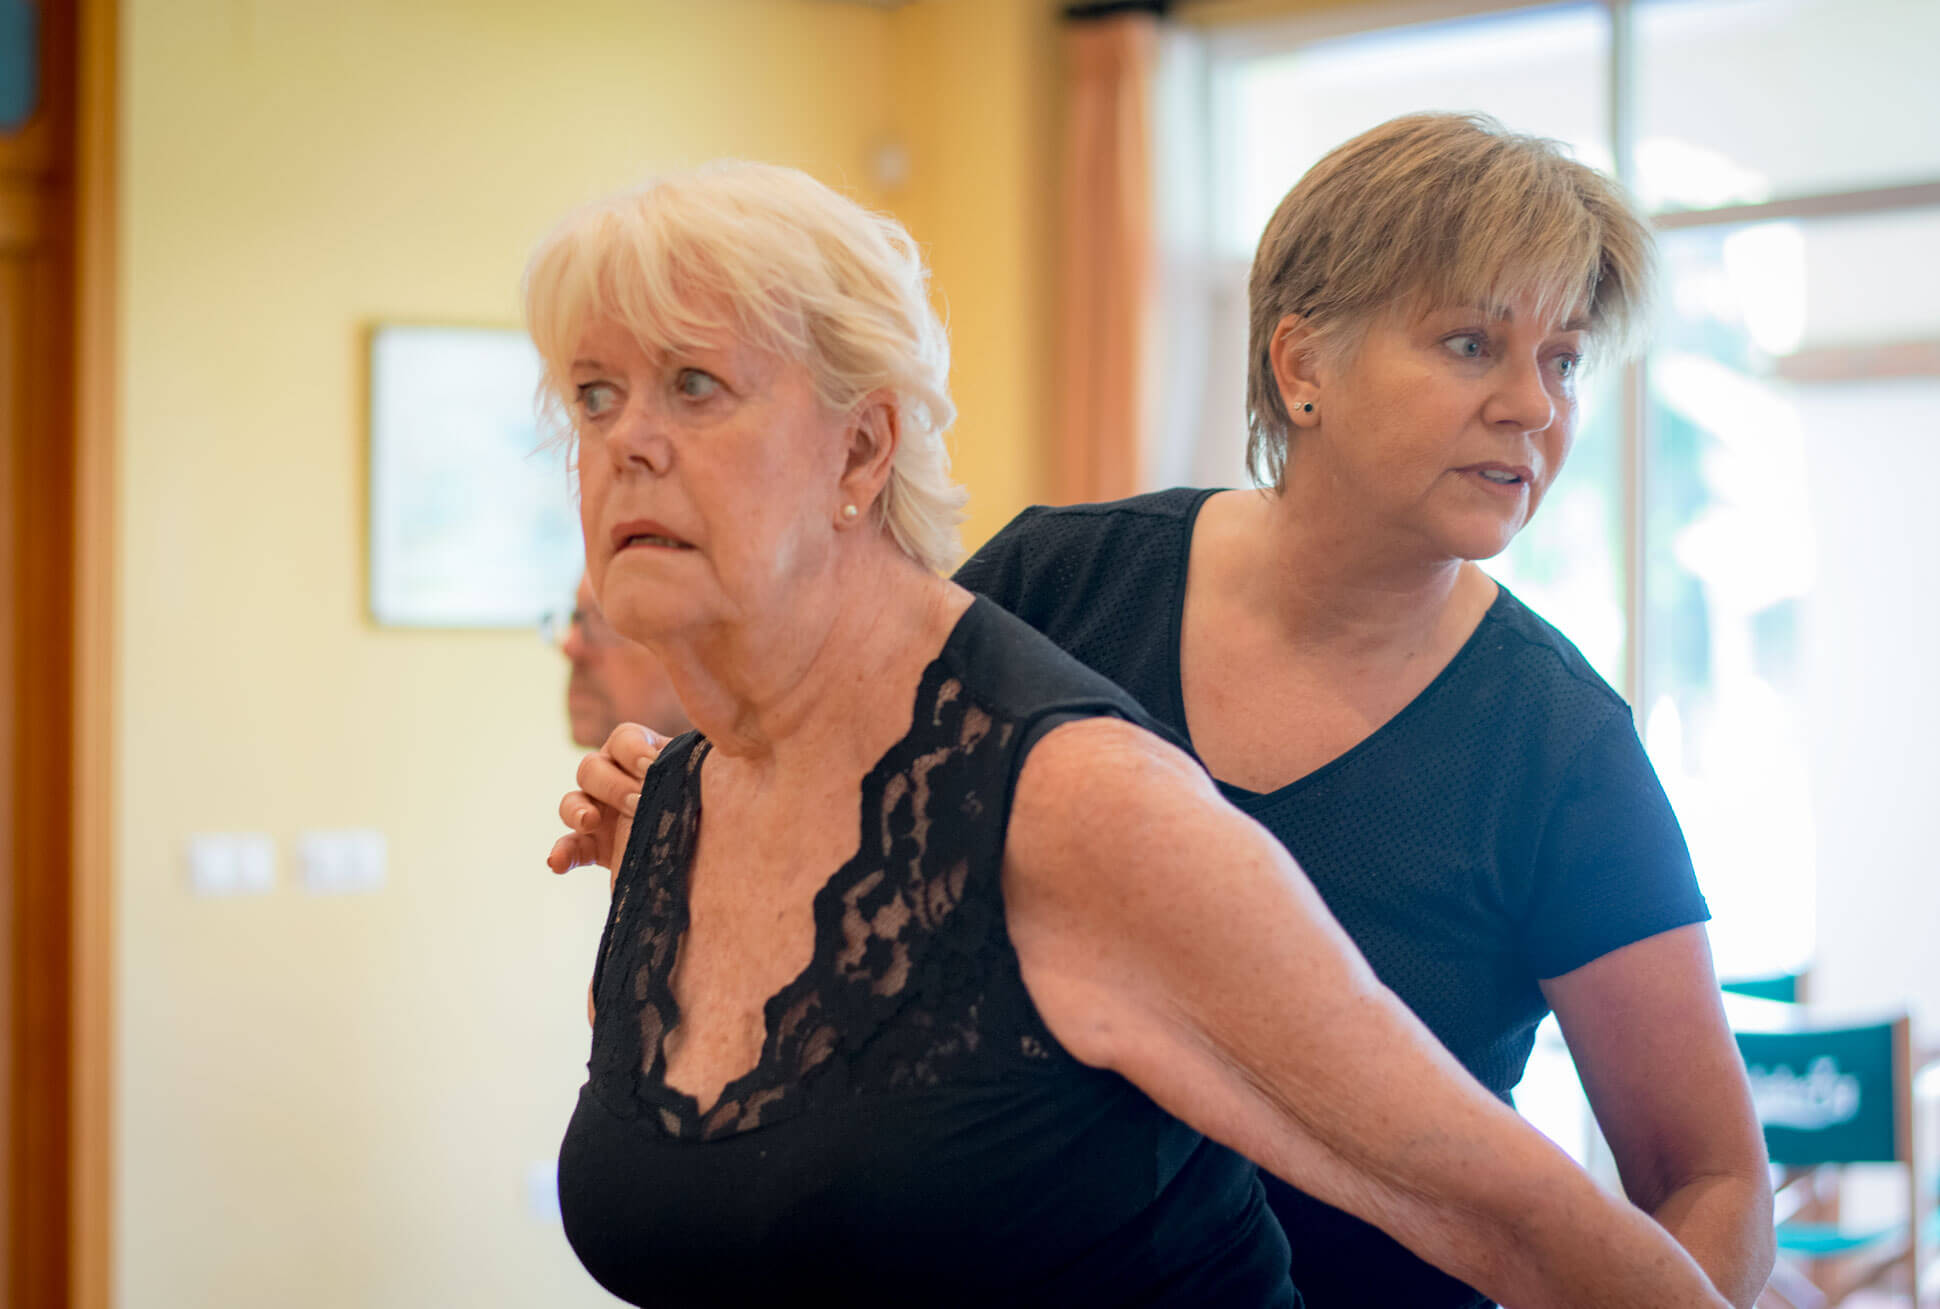 Pilates Instructor for people over 60 in Fuengirola